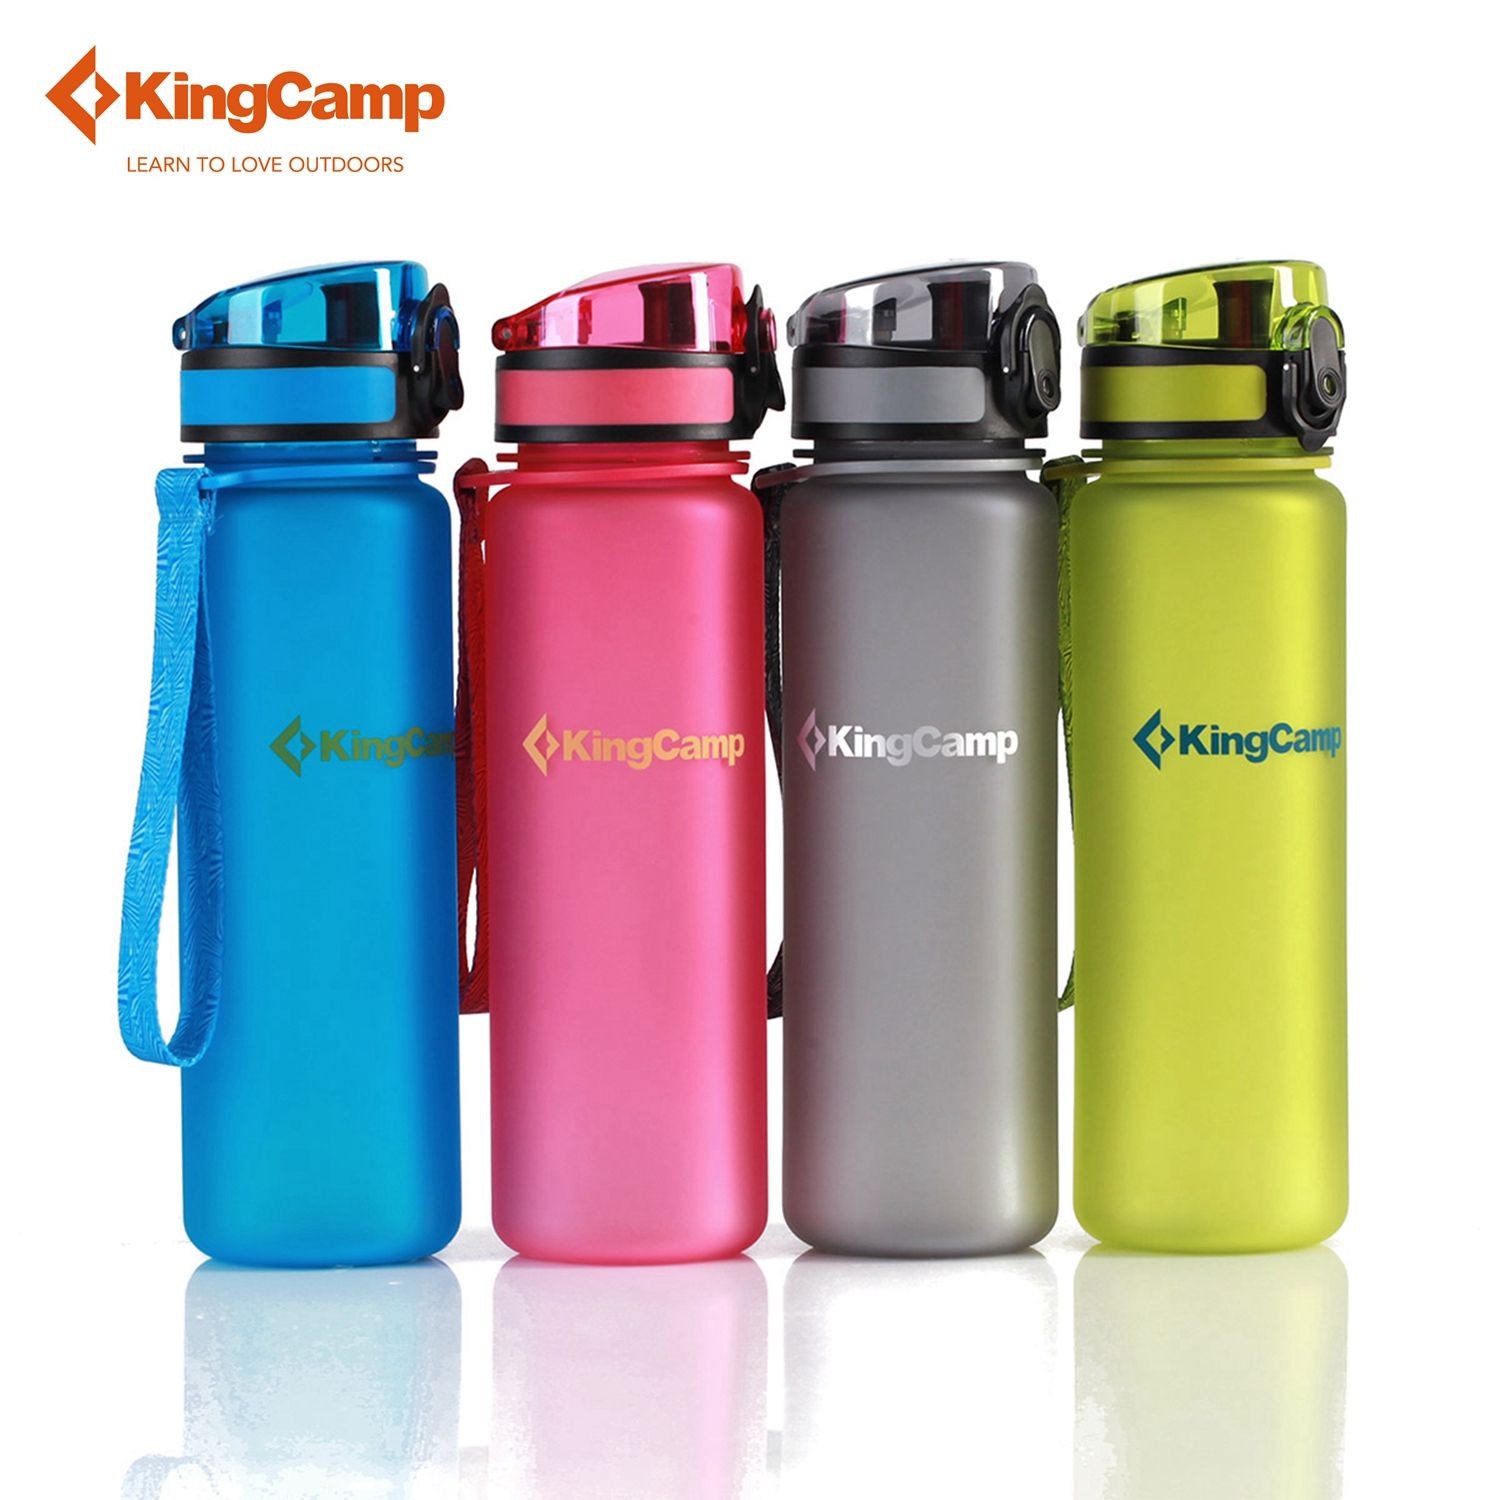 KingCamp 500ml Sport Bottle Portable Juice Drink Bottle For Outdoor Sports Cycling Travel Camping Climbing Hiking